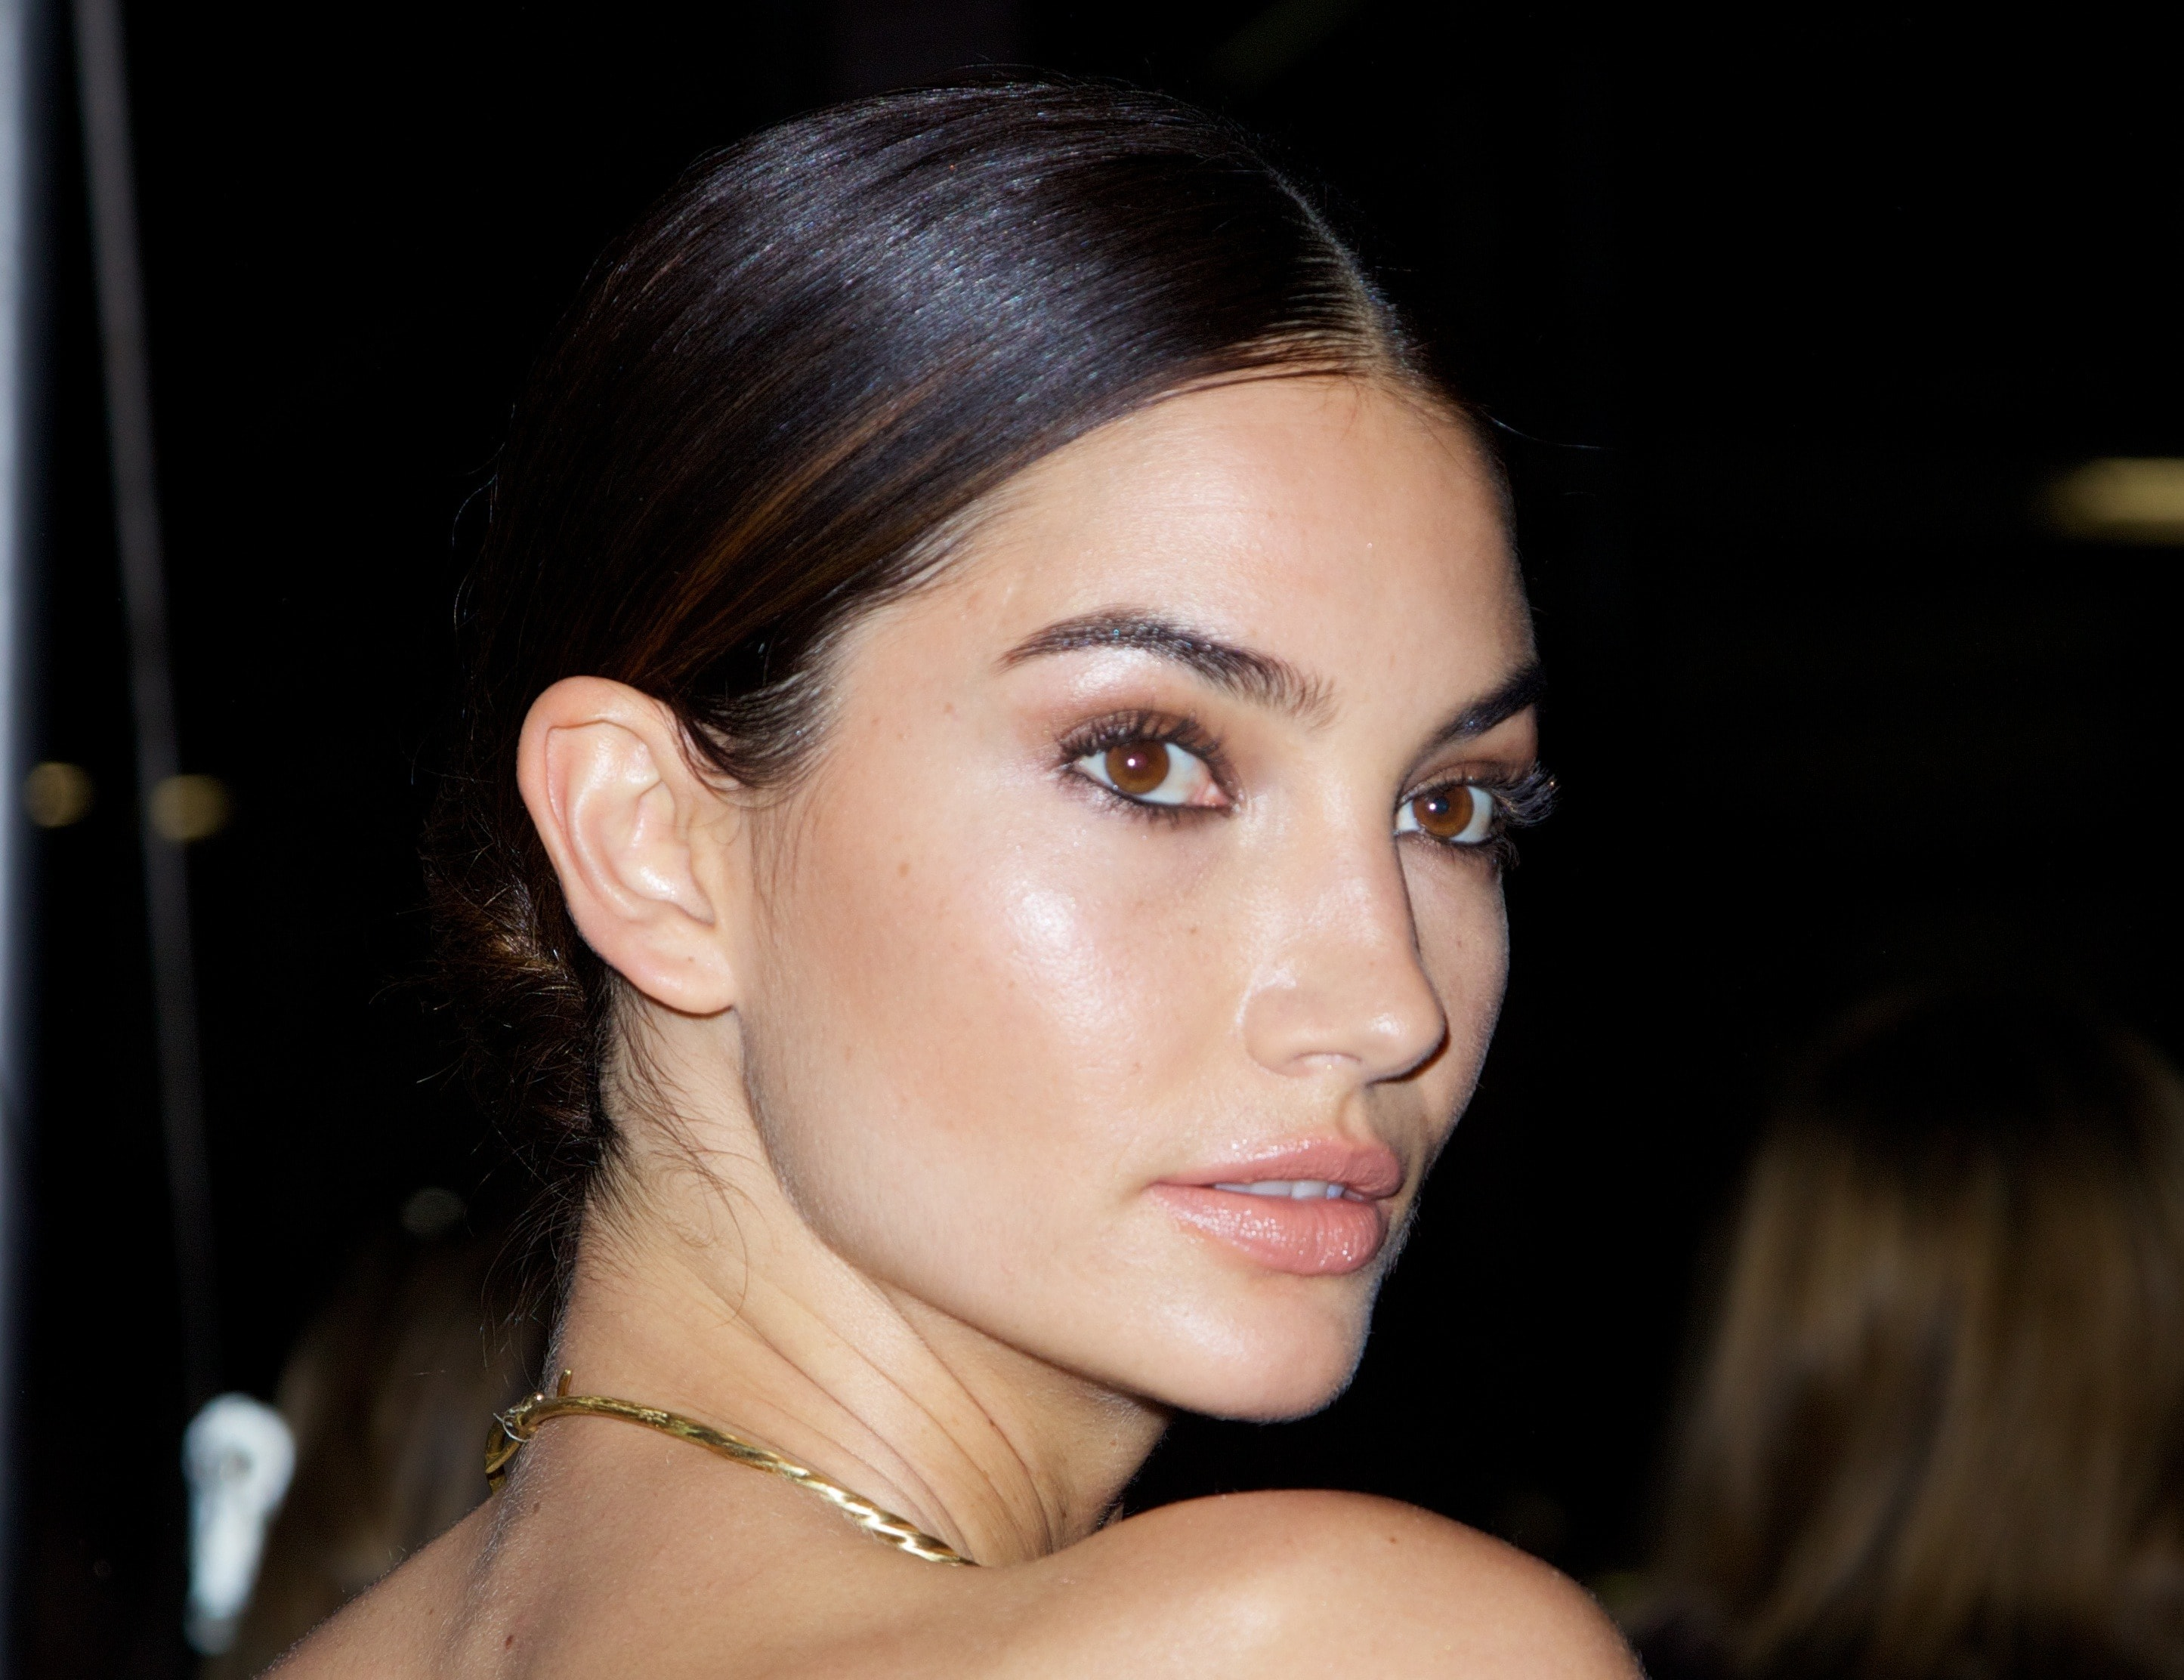 Lily Aldridge Wallpapers hd